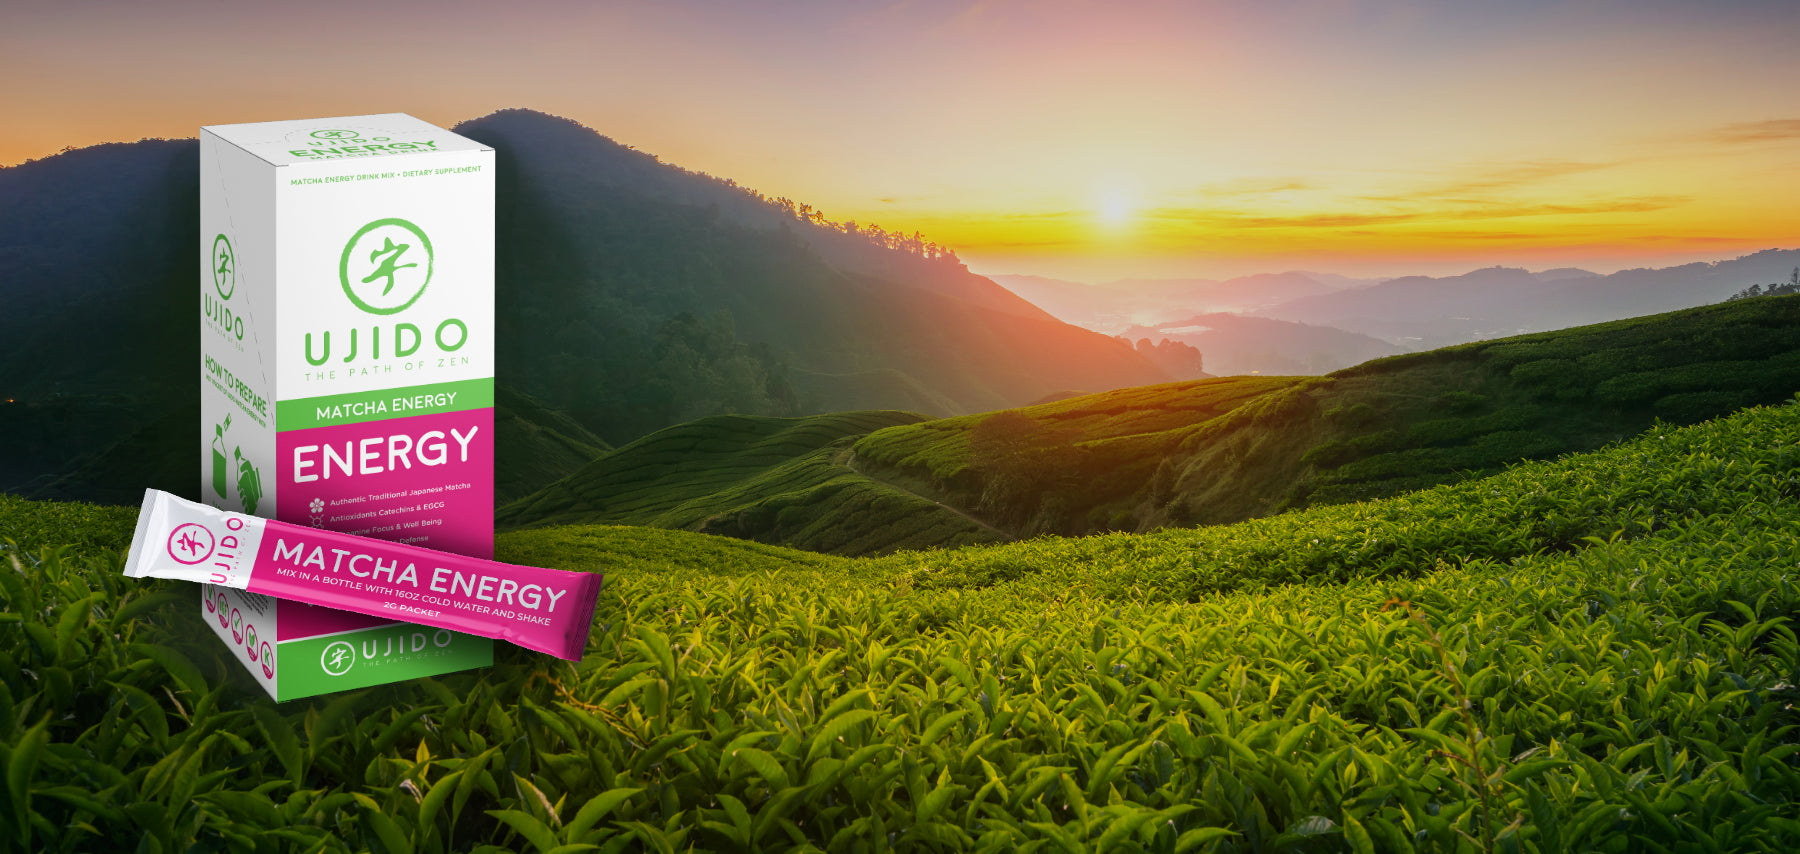 Matcha Energy is a Pre-Workout, Vitamin Enriched Matcha with B Vitamins and Vitamin C for Energizing Life